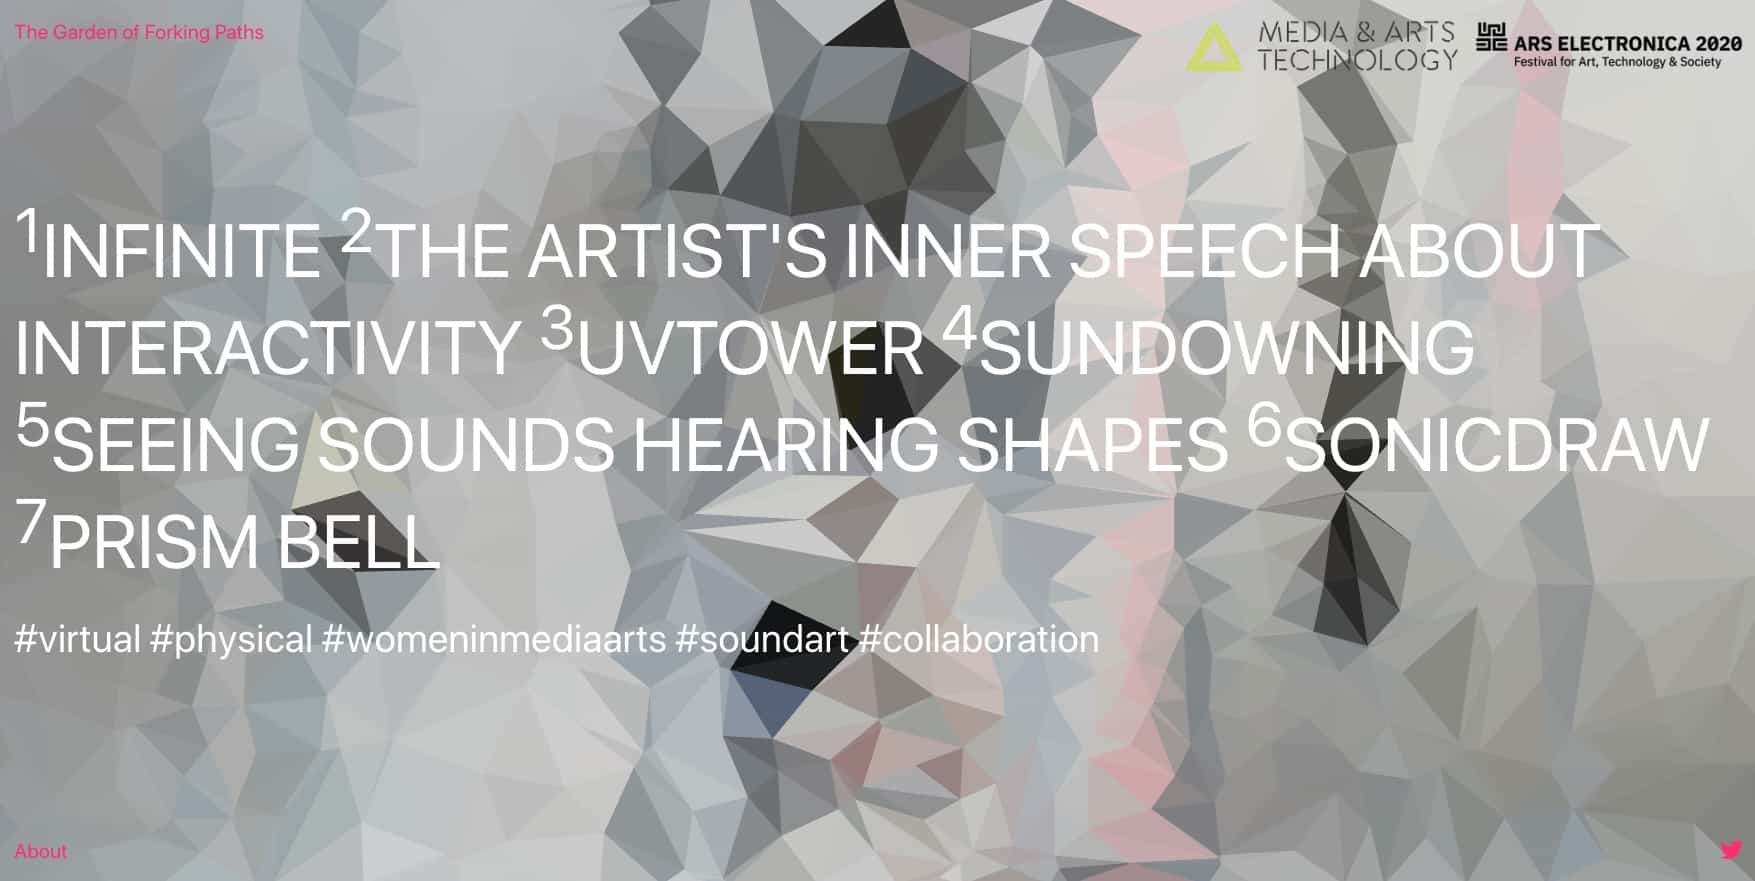 Sundowning at Ars Electronica 2020